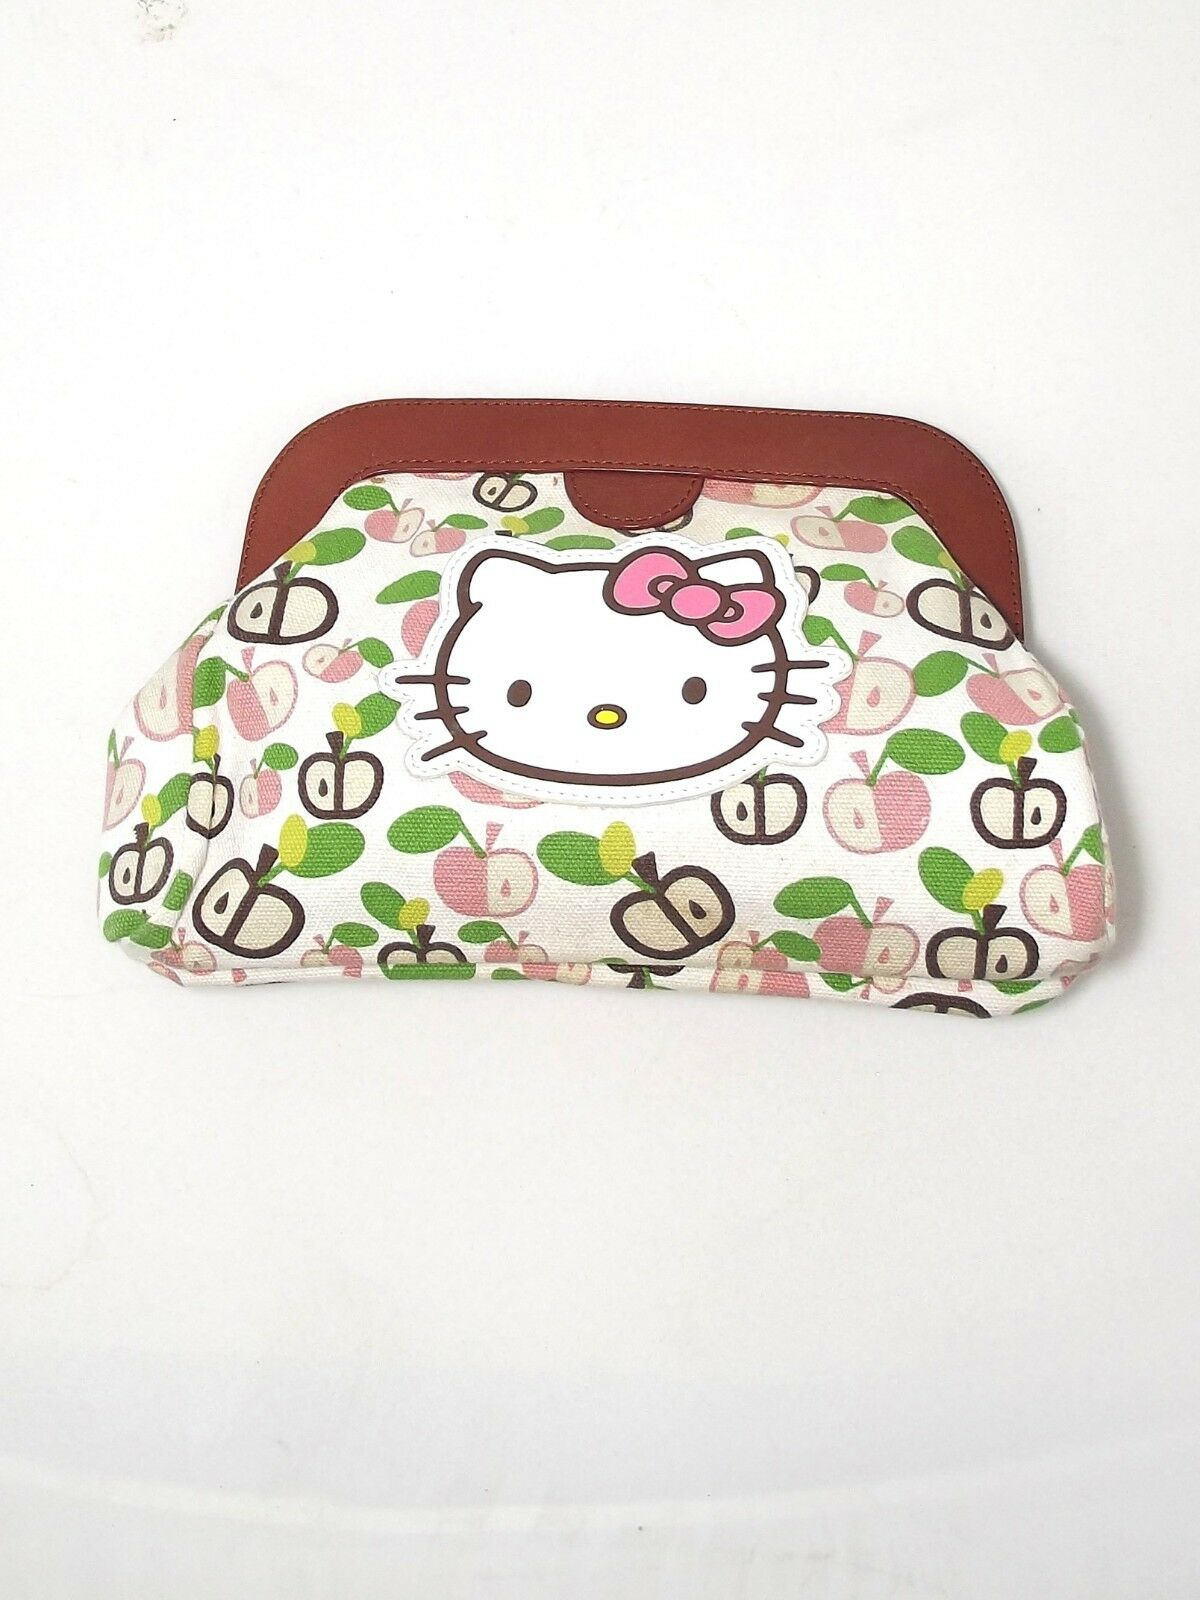 Hello Kitty by Victoria Couture Clutch Hand Bag Leather White Fabric